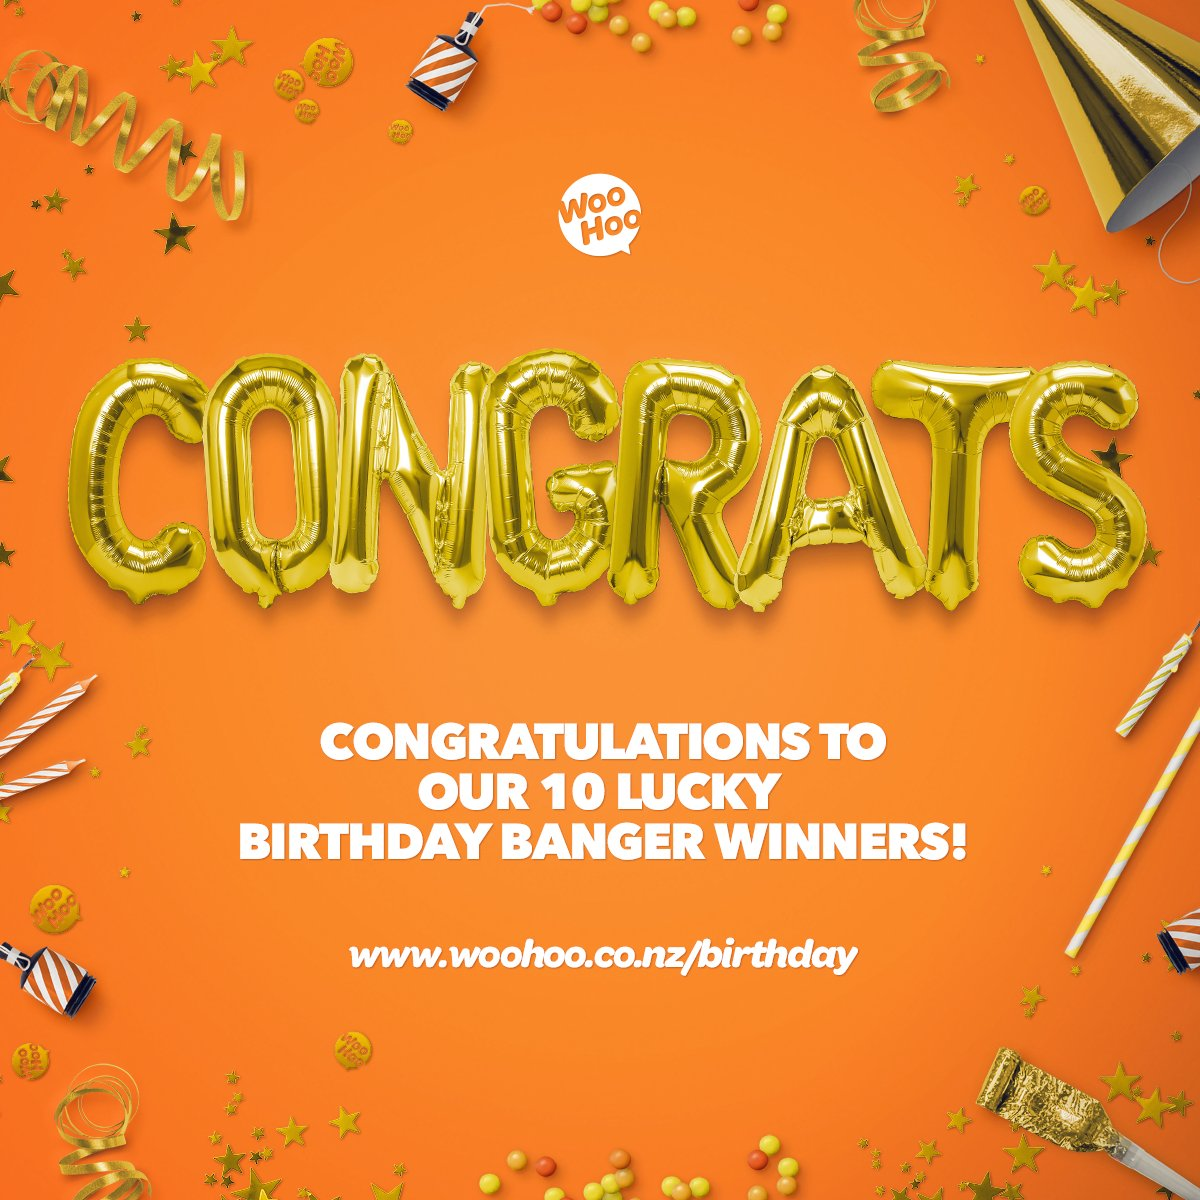 Our 10th Birthday Banger has finally come to a close and now we're in the double-digits. Thanks for celebrating with us. We've given away over $10,000 in presents and been in touch with all of our winners, who are pretty stoked. WooHoo!  #WooHoo #ShowMeTheMoney #BirthdayBanger